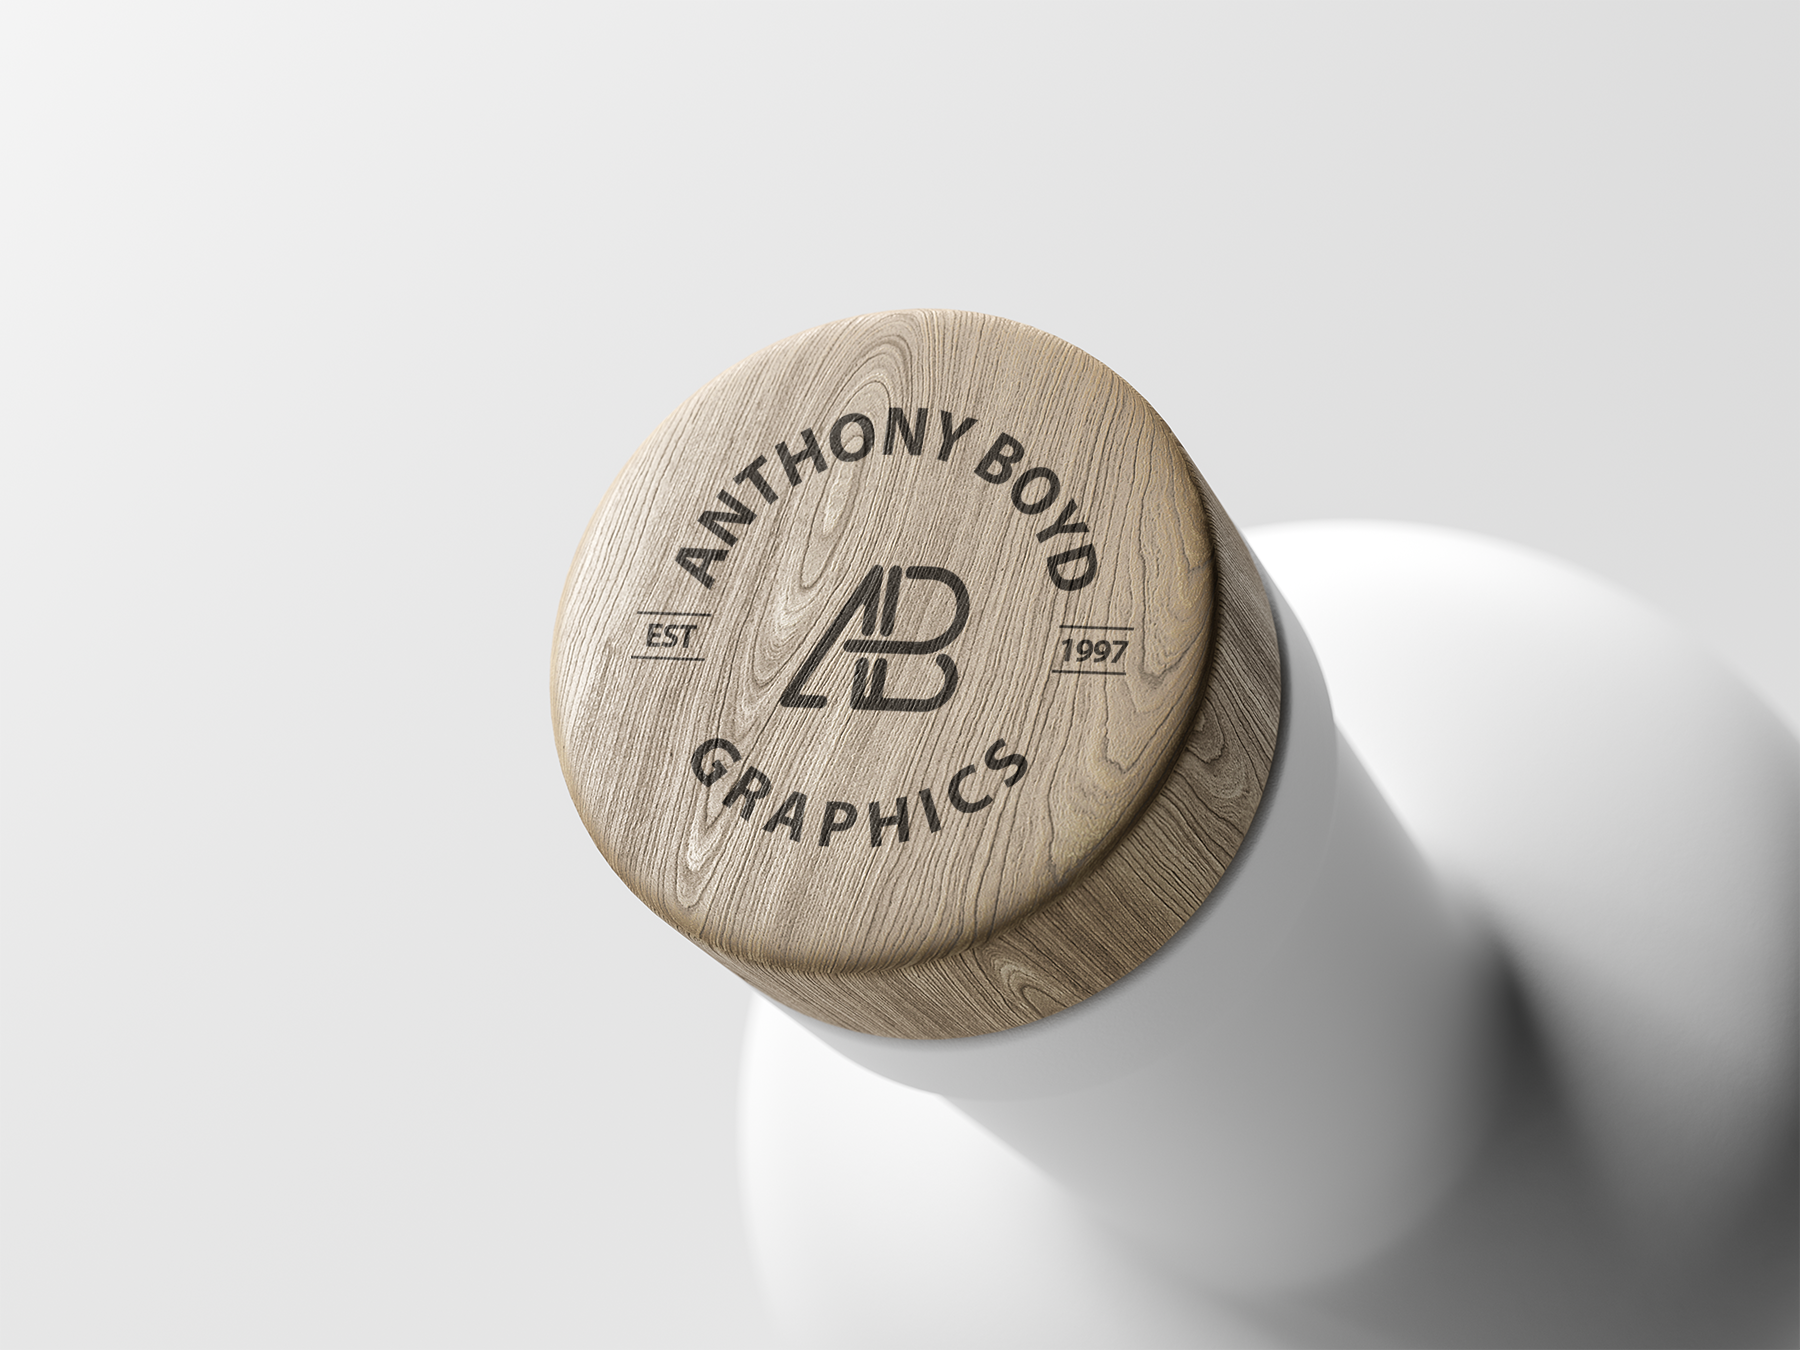 Free Wooden Bottle Cap Mockup